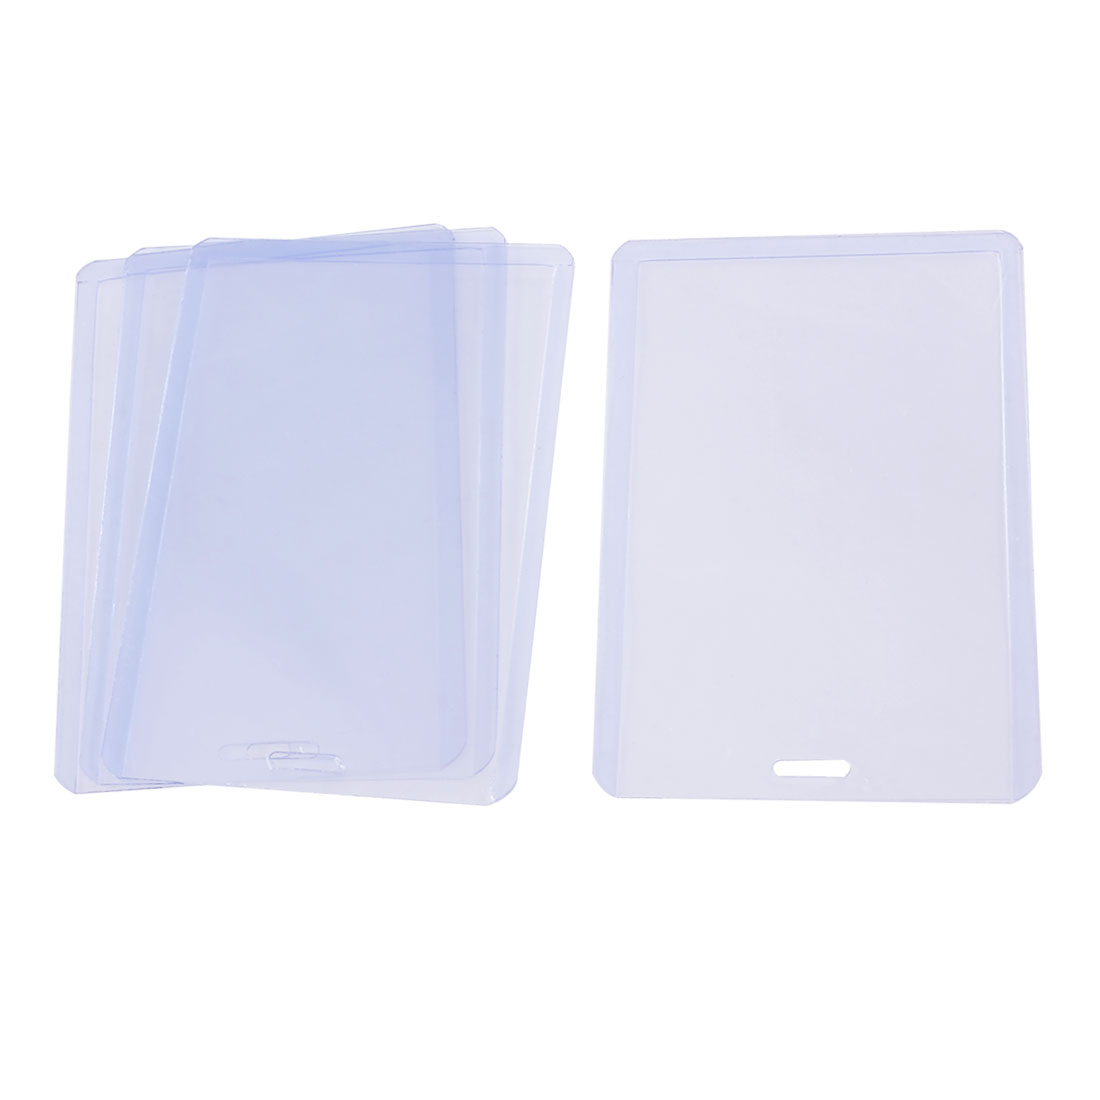 Clear Blue Plastic Vertical Business ID Badge Card Holder 4 Pcs